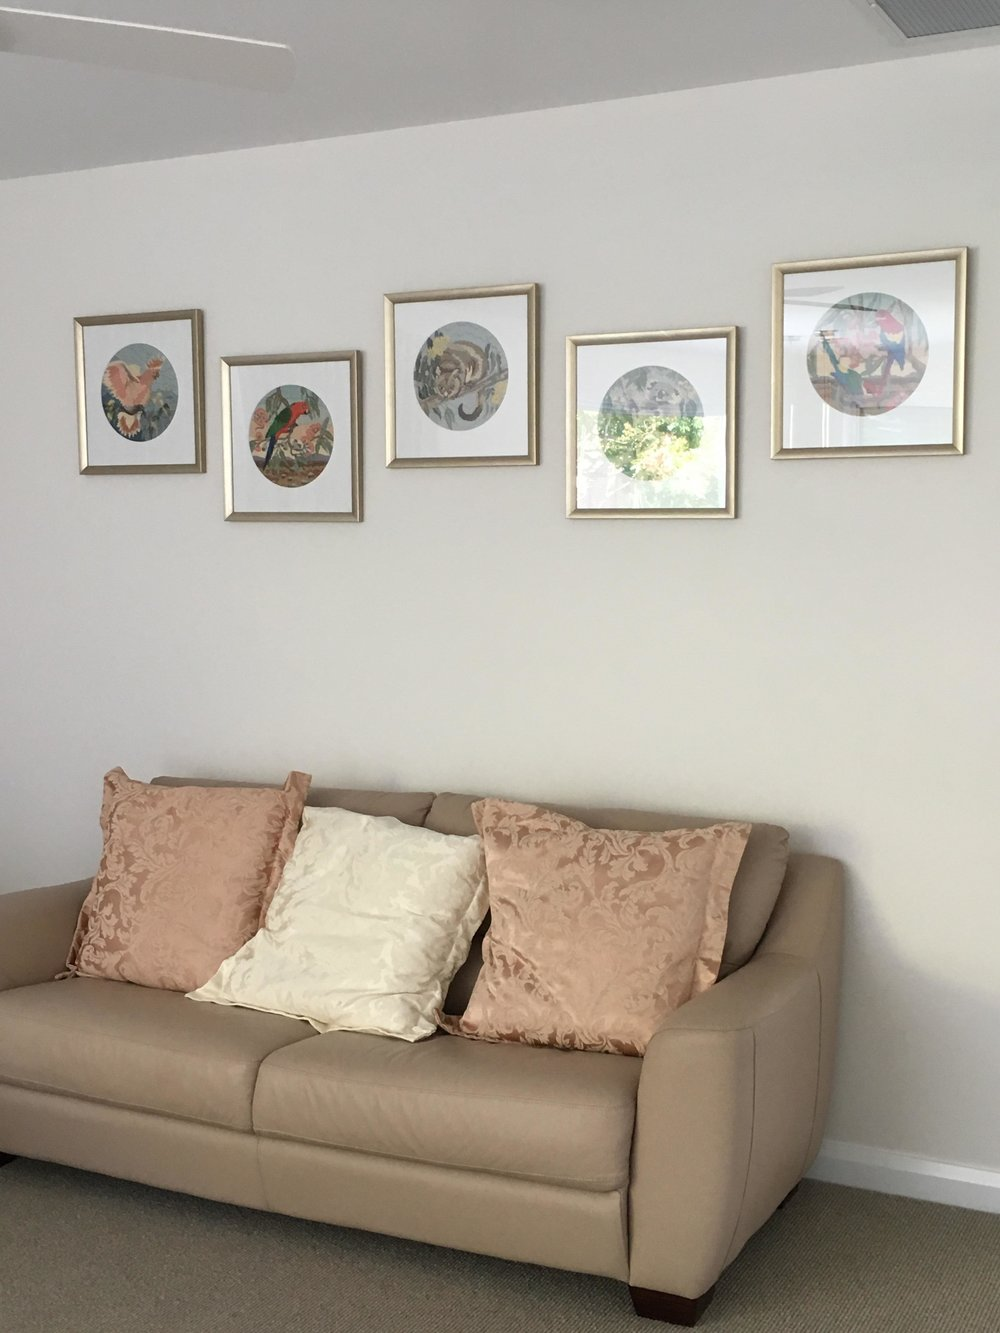 Gallery hang framed needleworks Brisbane.jpg